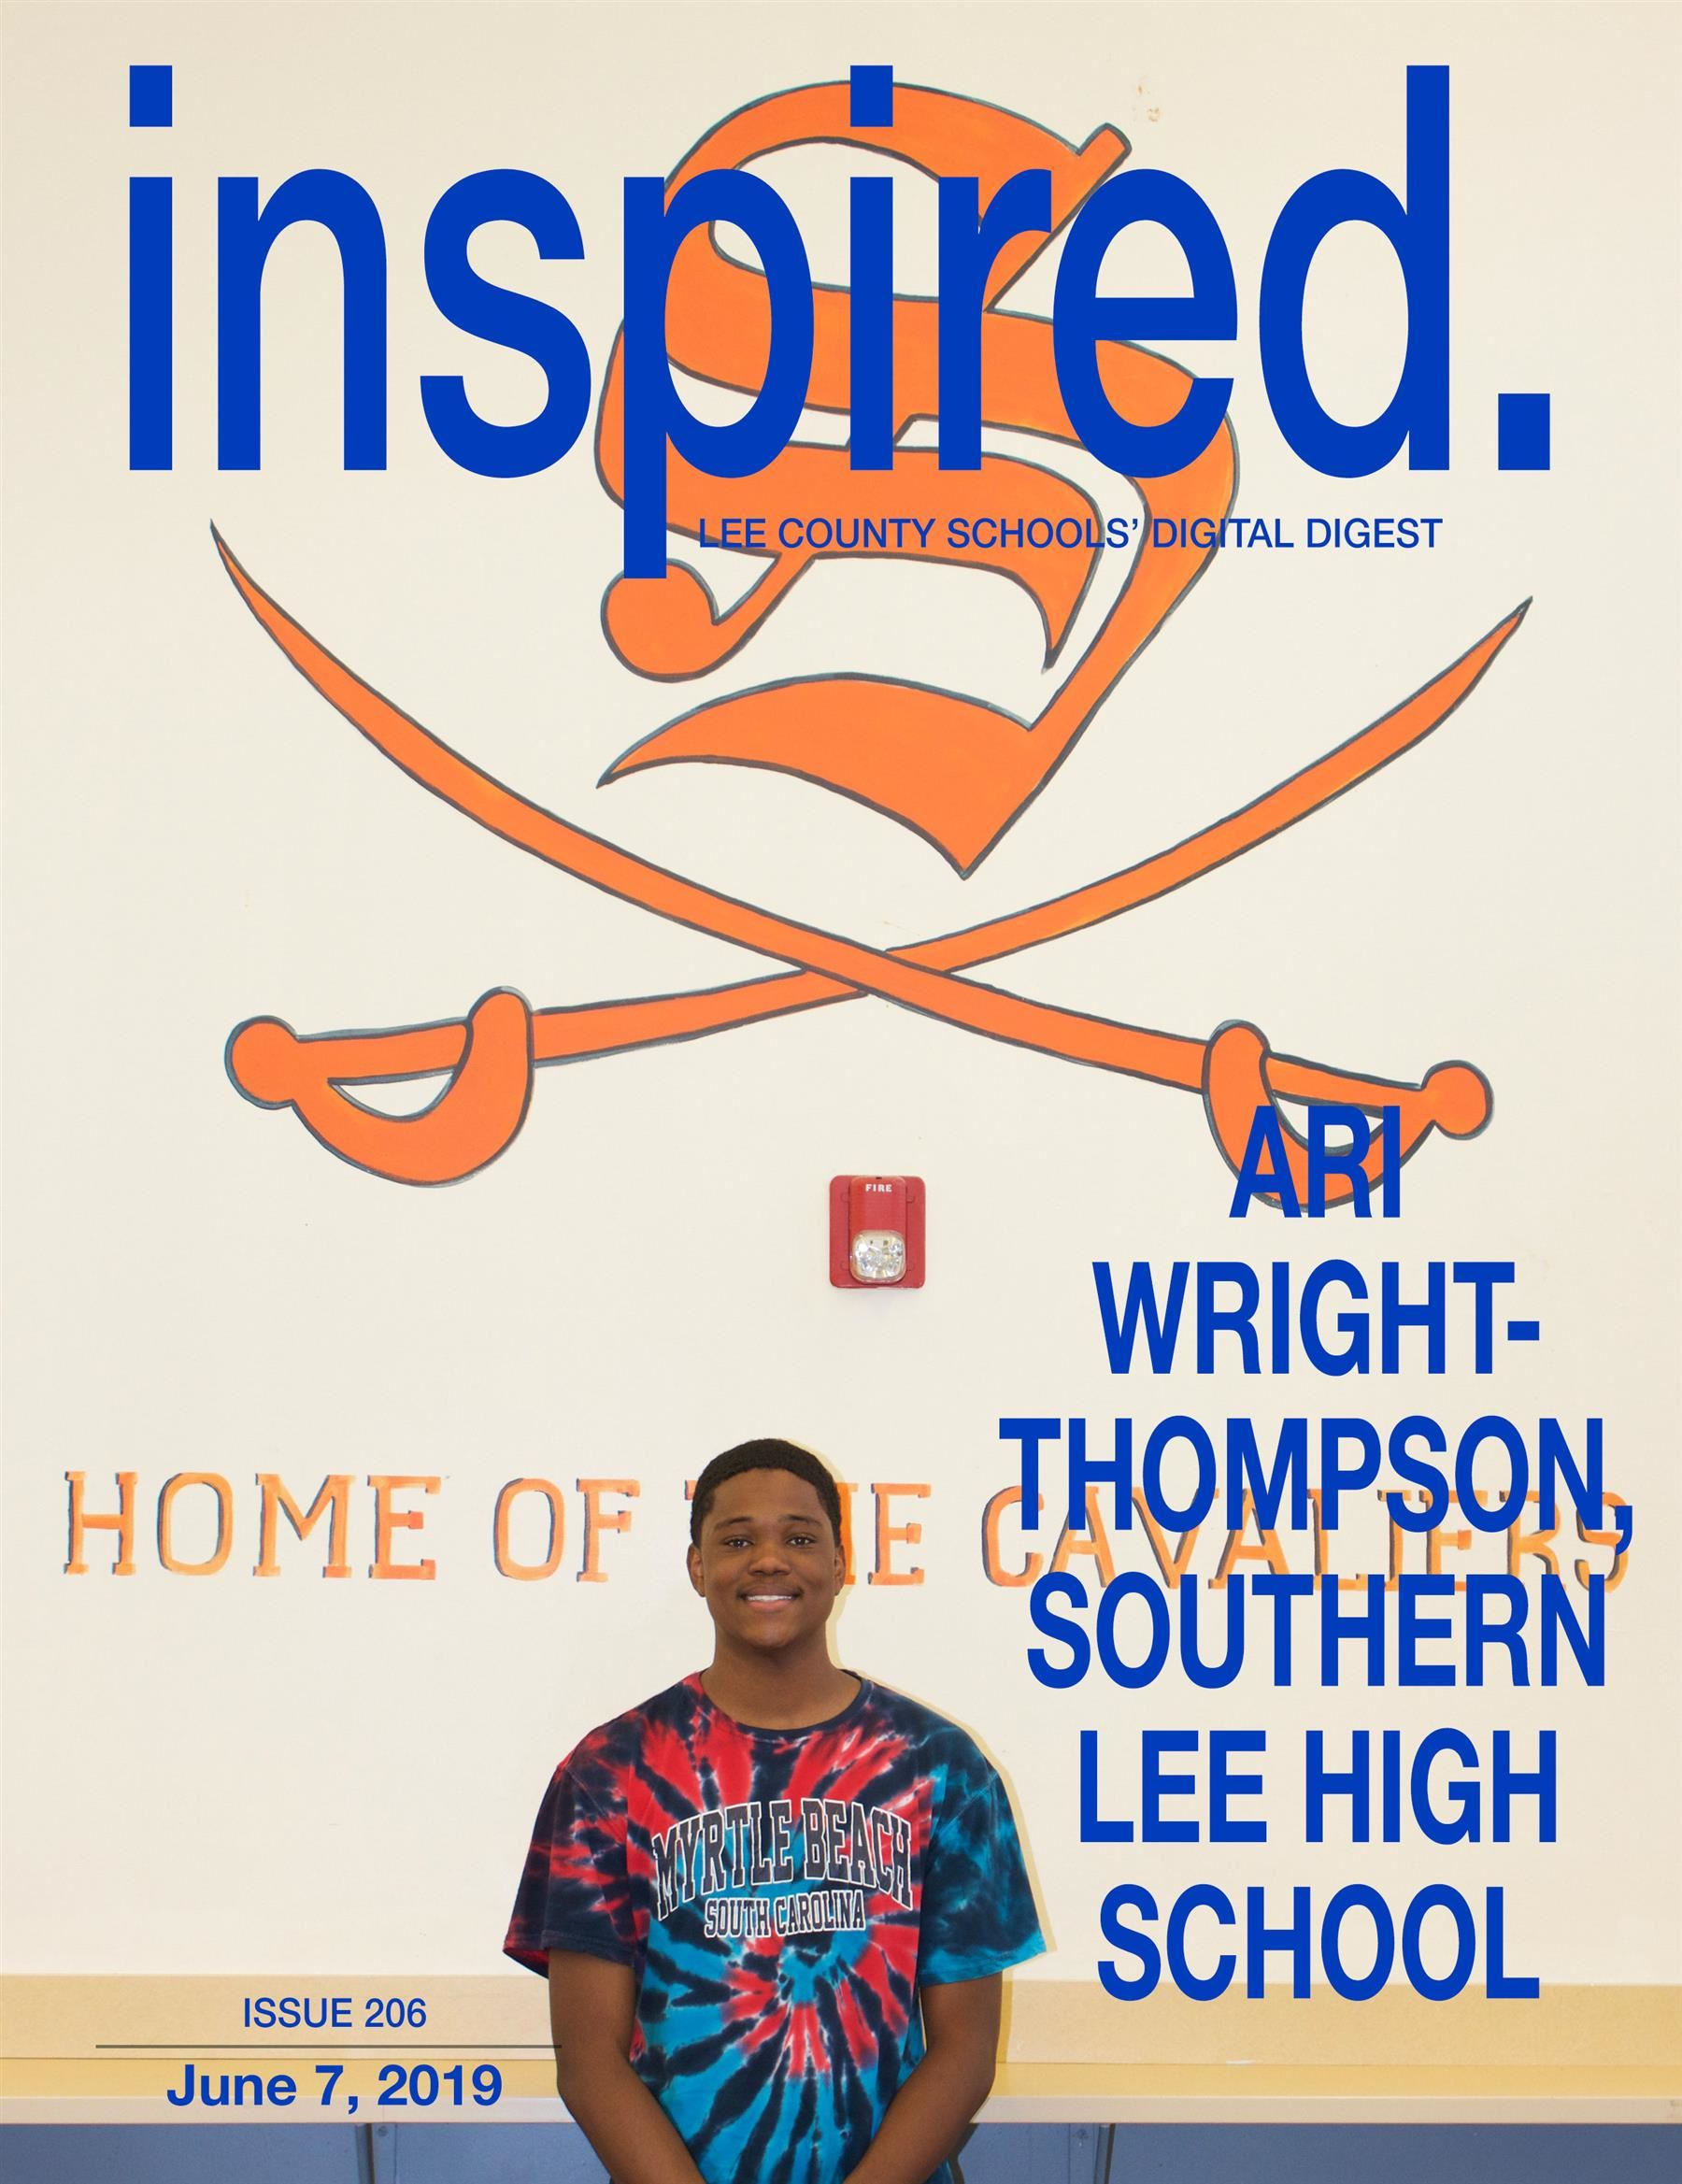 INSPIRED. Ari Wright-Thompson, Southern Lee High School